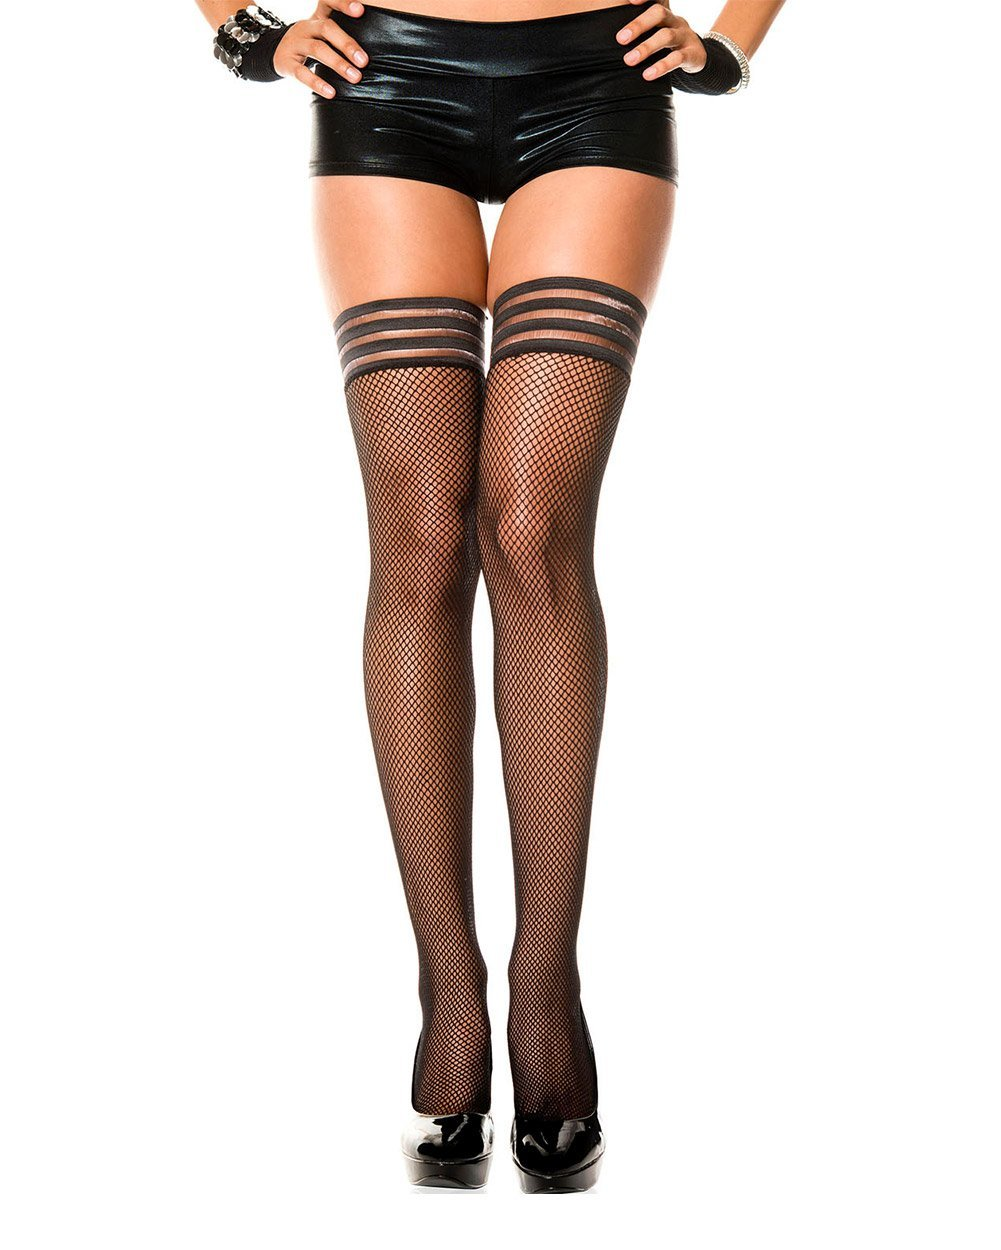 150329ab7 Ribbed Top Fishnet Thigh Highs - EDM Sauce